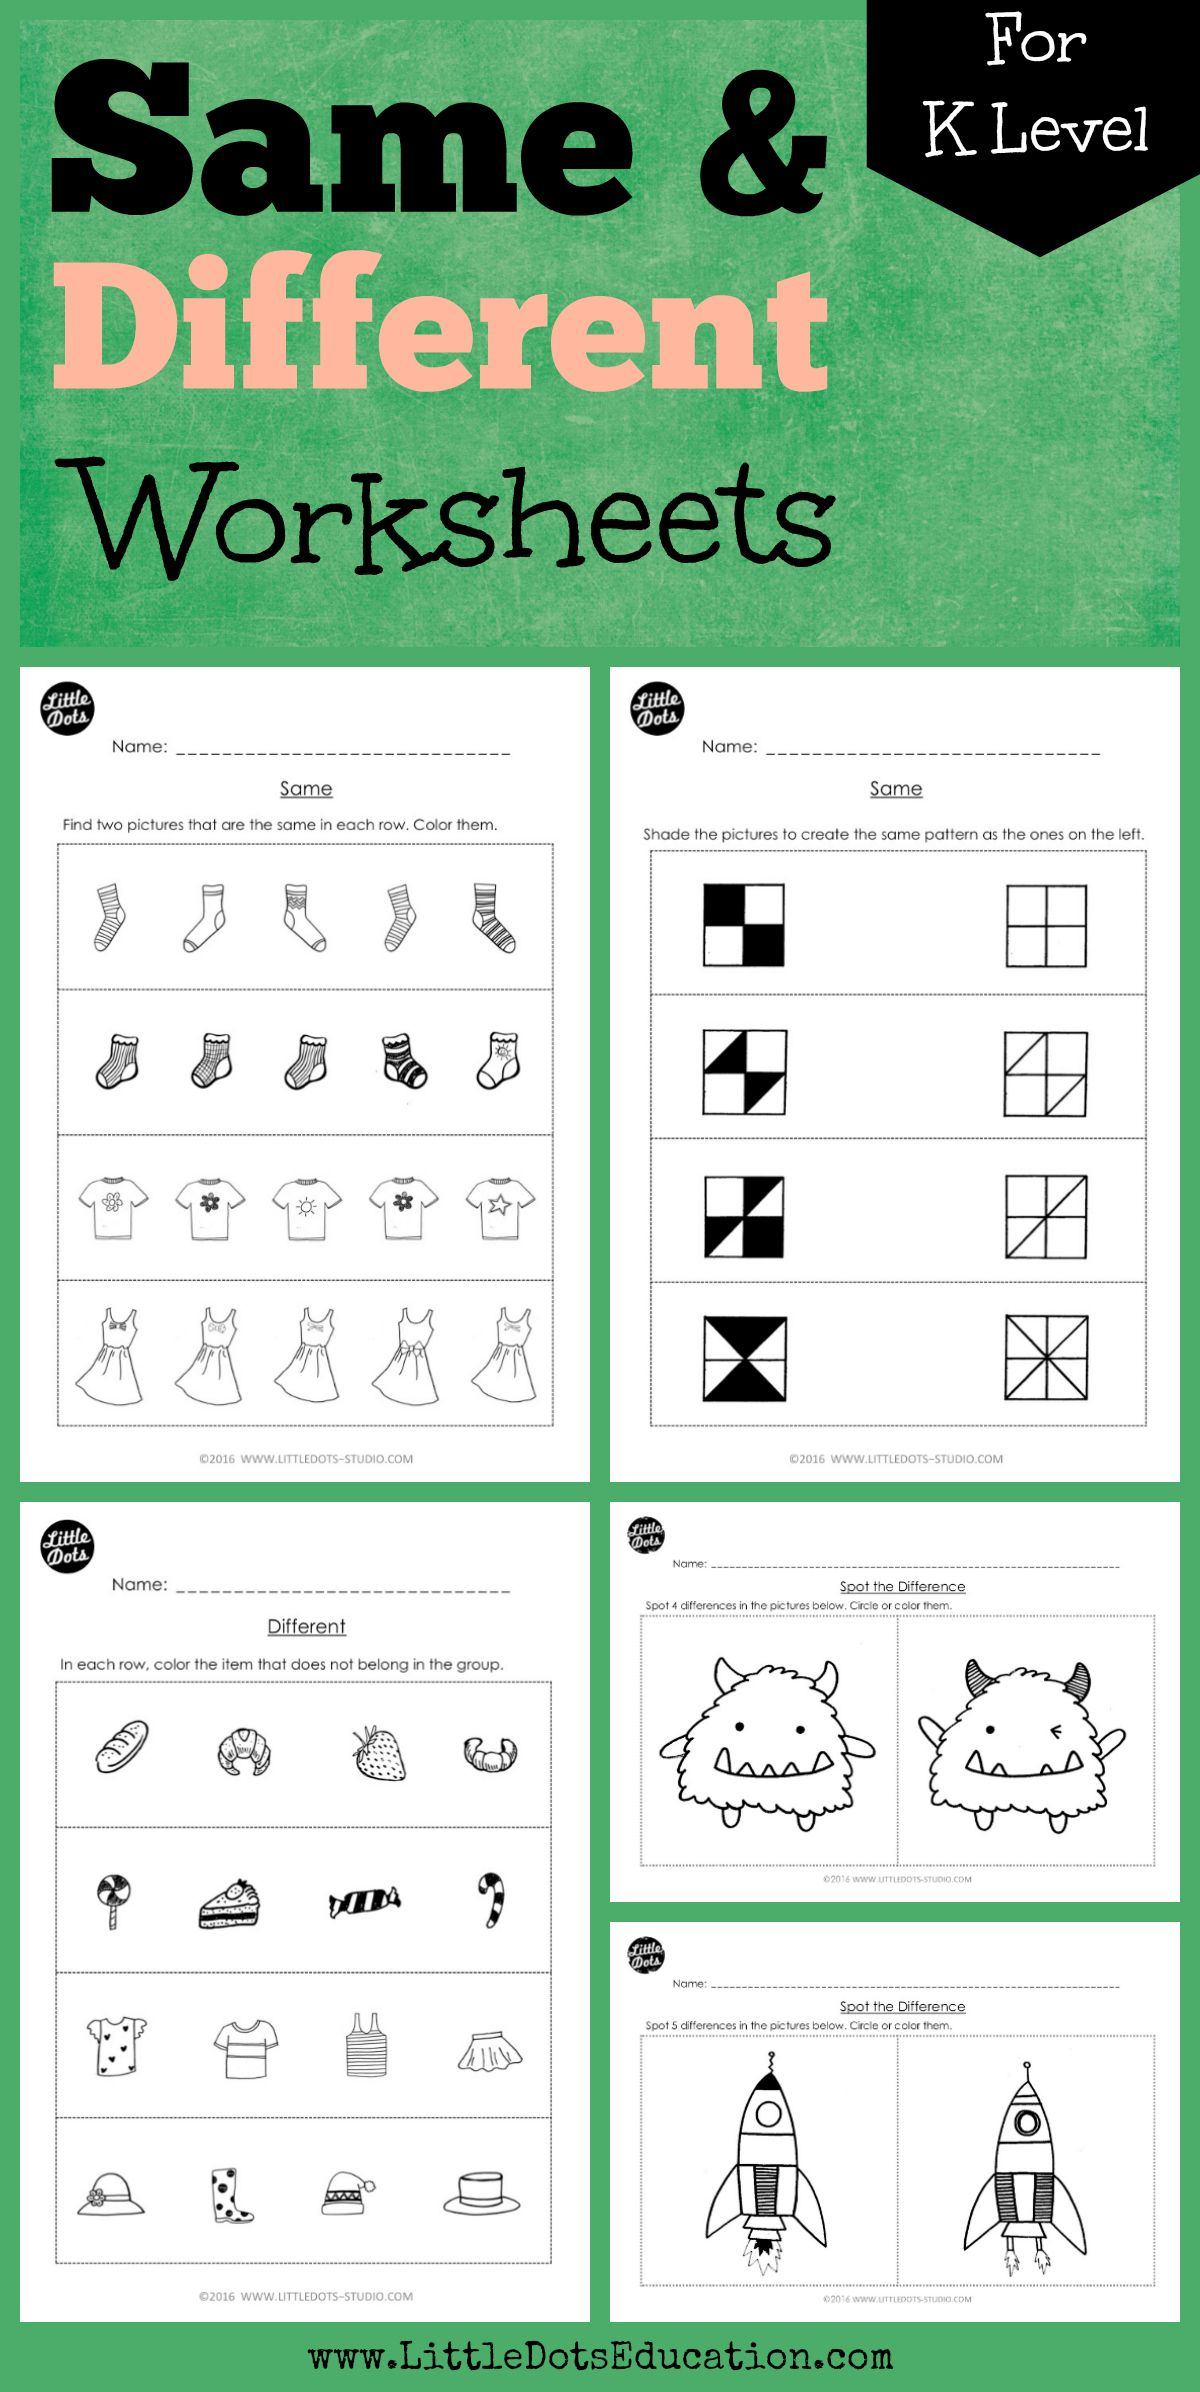 Download Worksheets And Activities To Teach The Concept Of